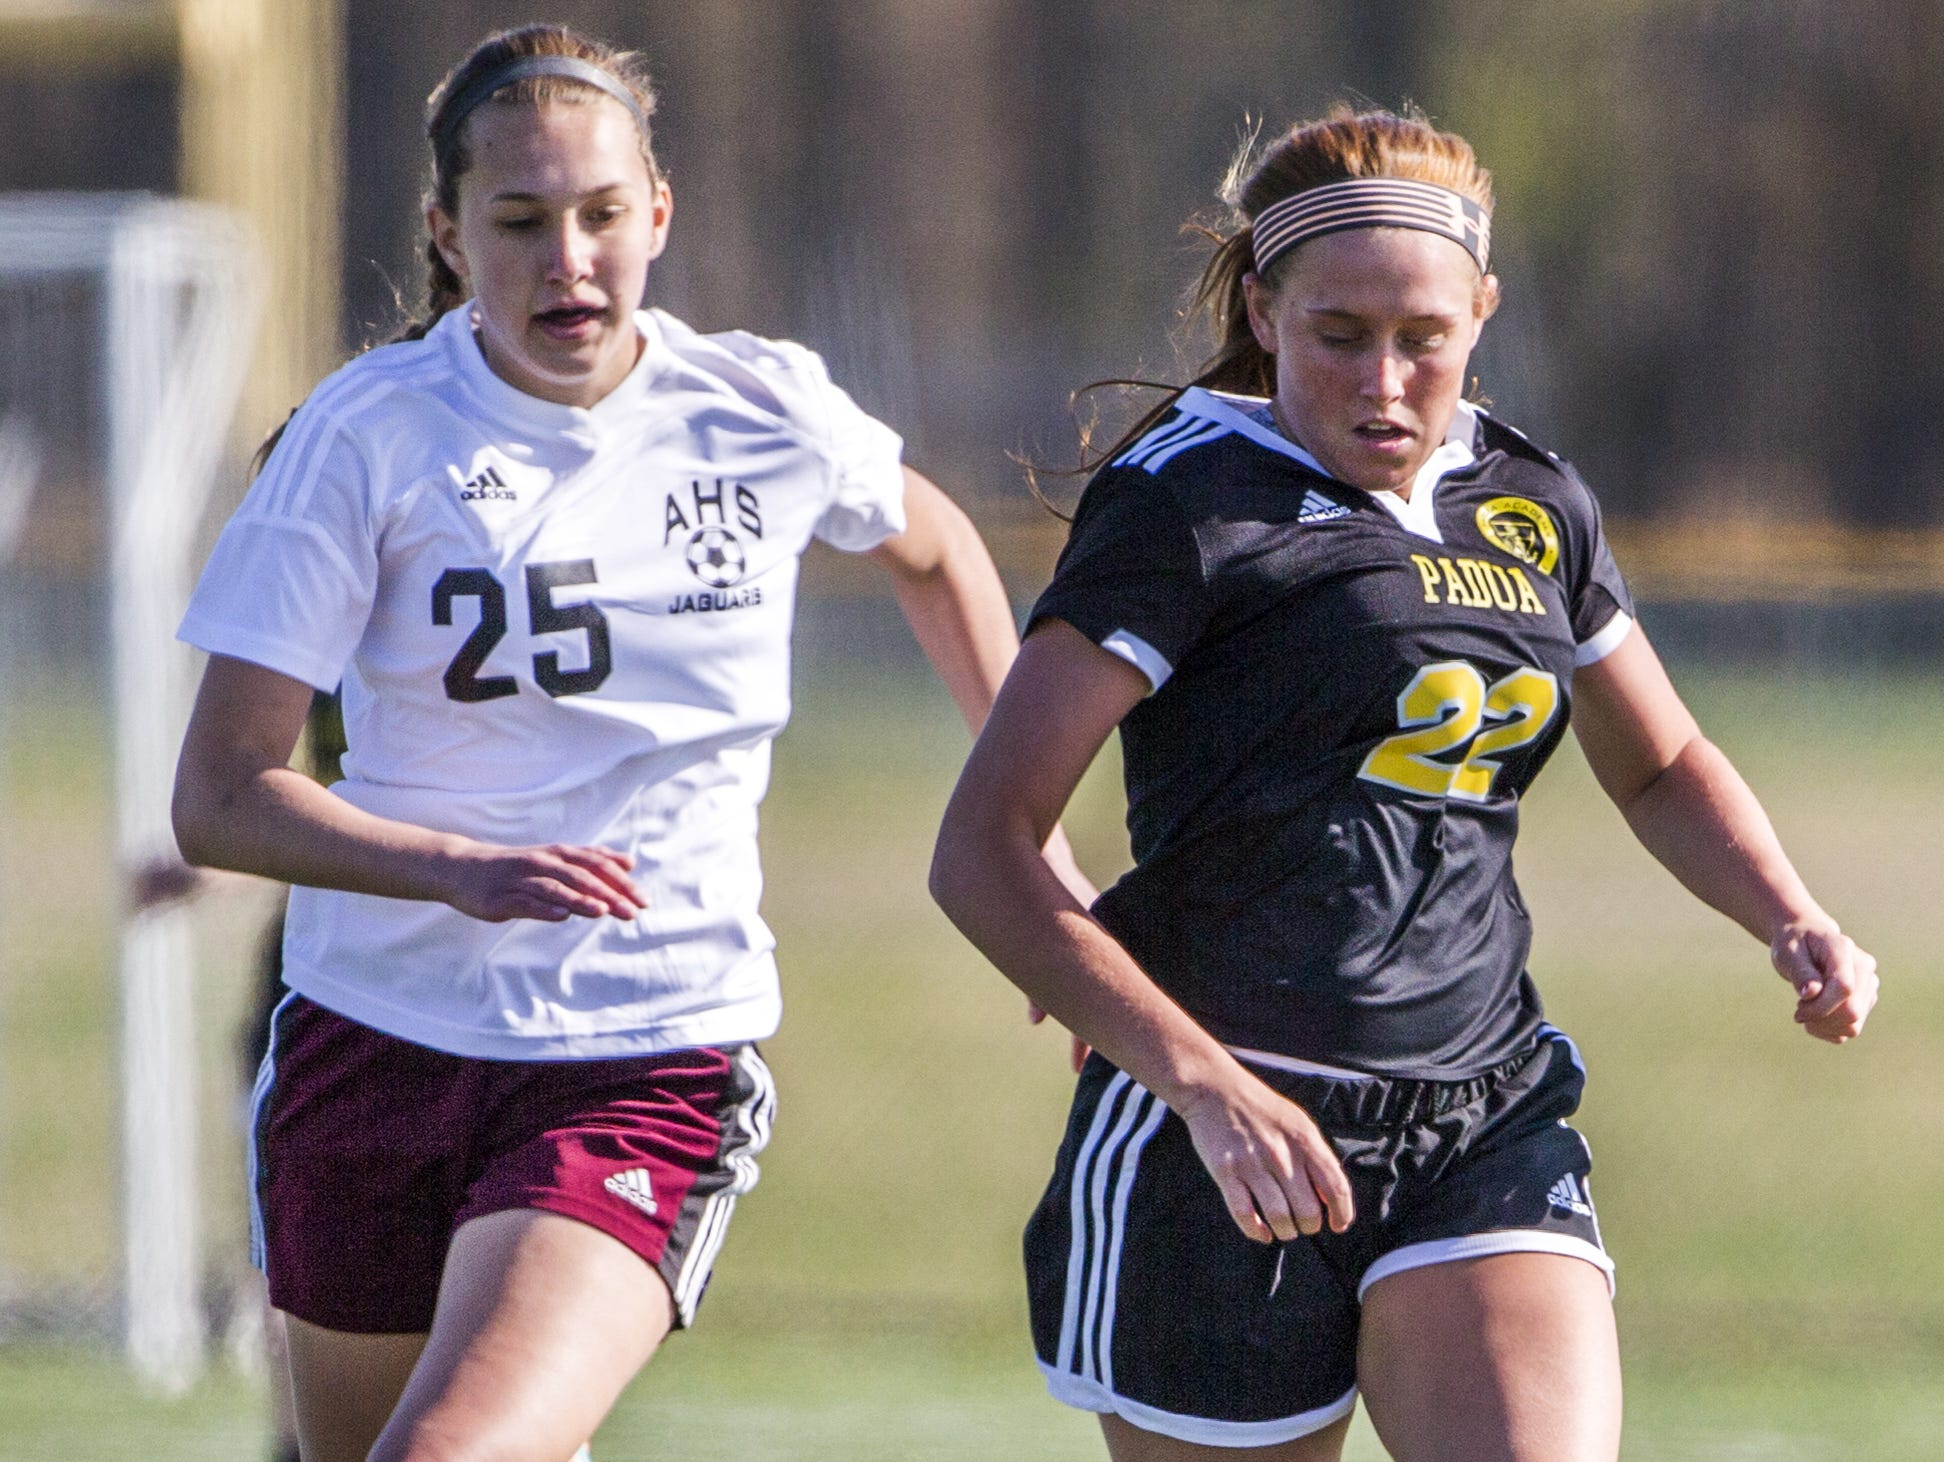 Padua's Mackenzie Scully (No. 22) runs ahead of Appoquinimink's Alison Candy (No. 25) in the second half of Padua's 4-0 win at Appoquinimink this spring.